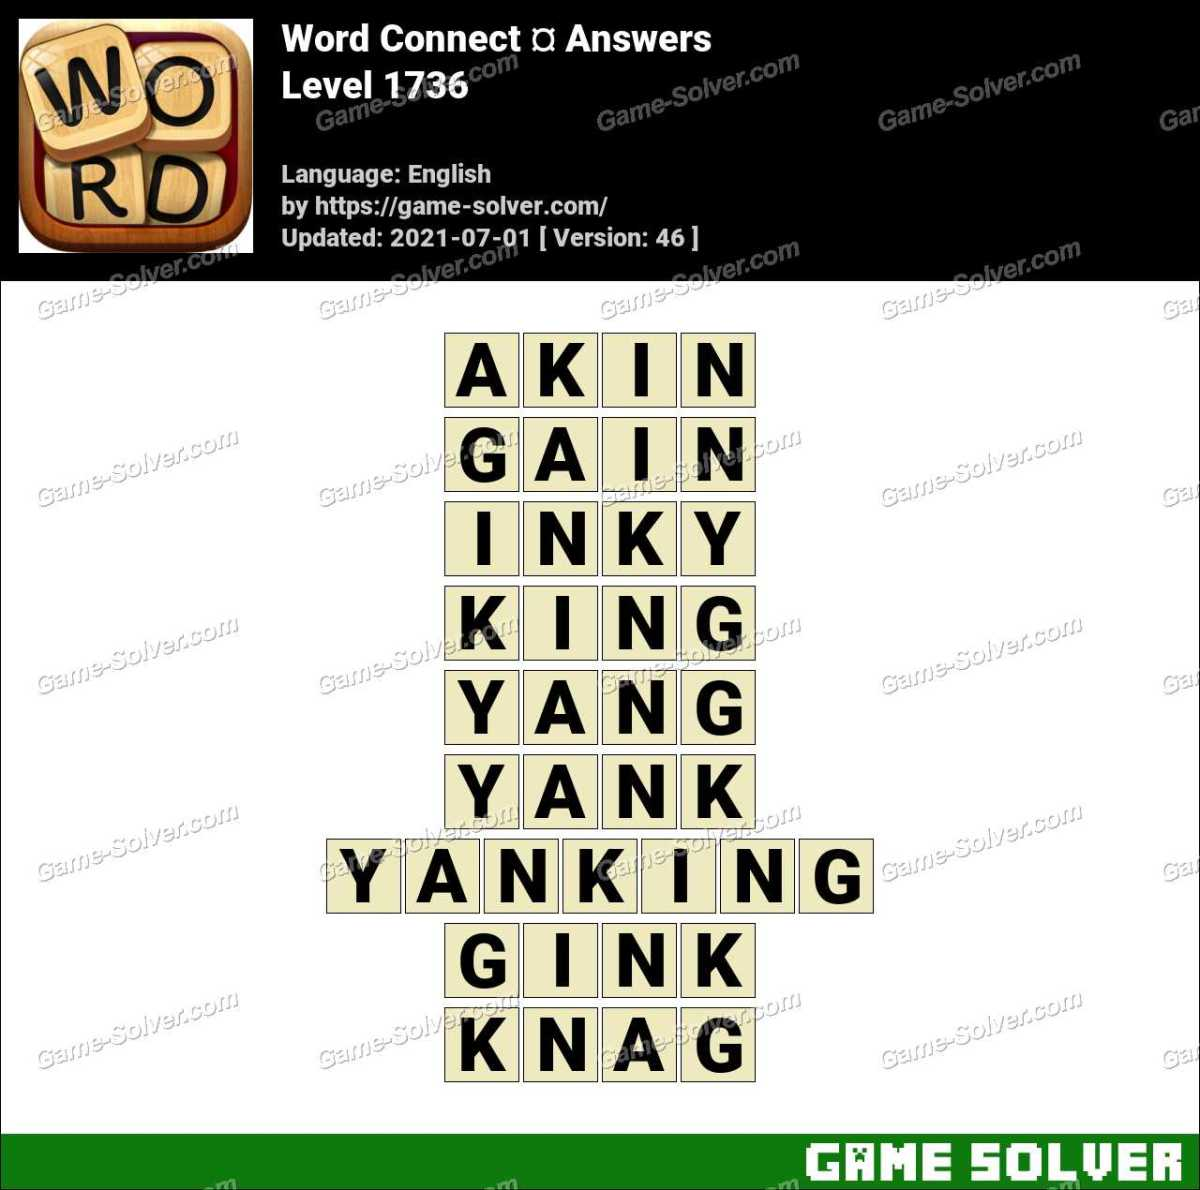 Word Connect Level 1736 Answers